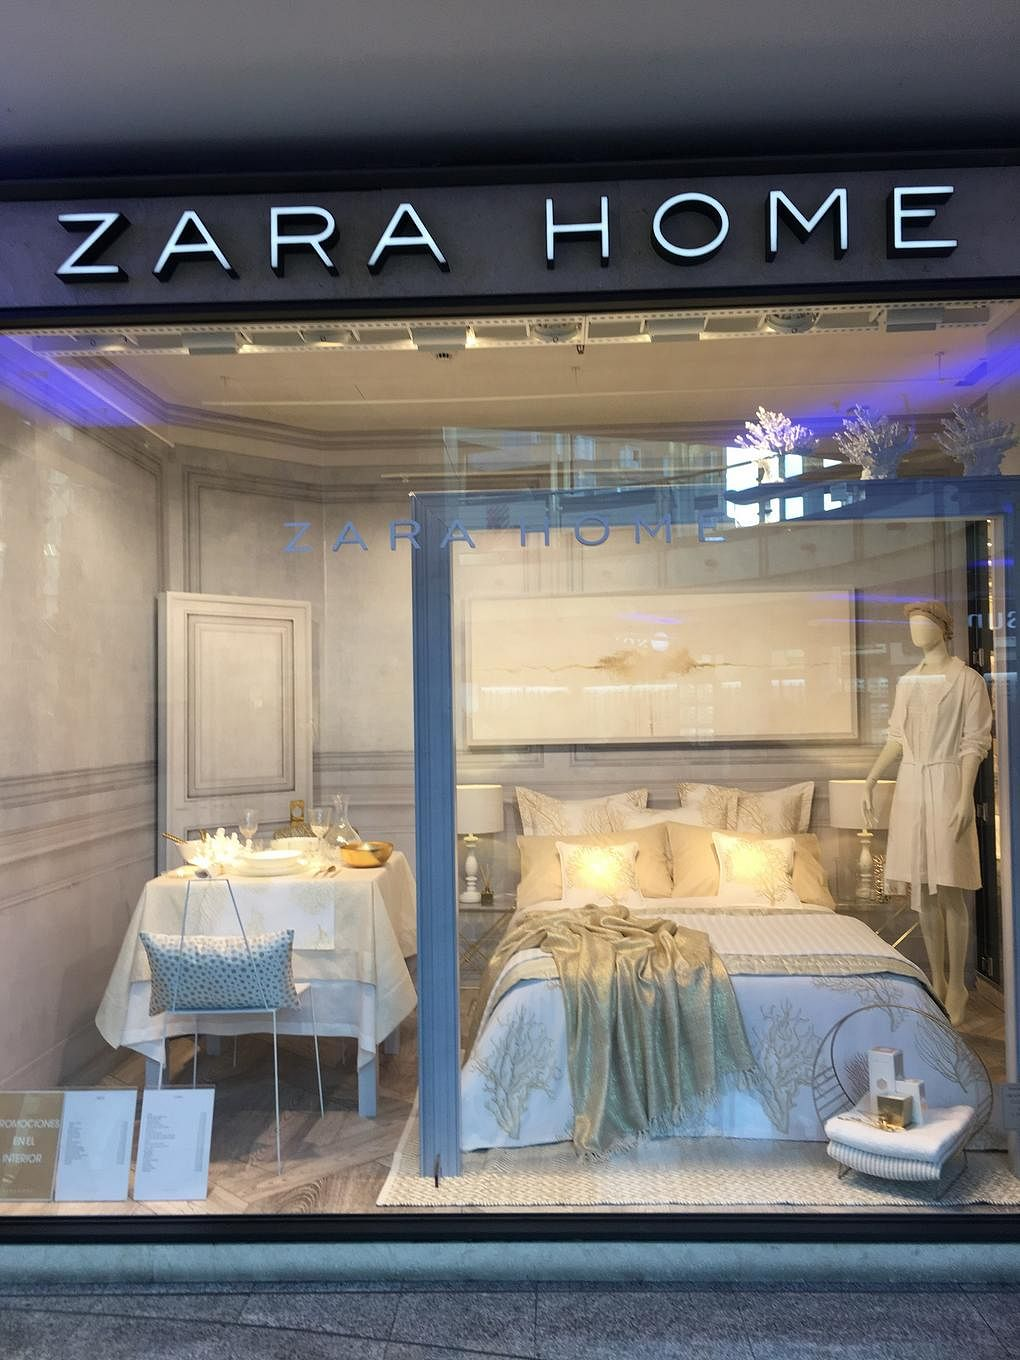 12 pretty home furnishings at zara home in madrid home decor singapore. Black Bedroom Furniture Sets. Home Design Ideas